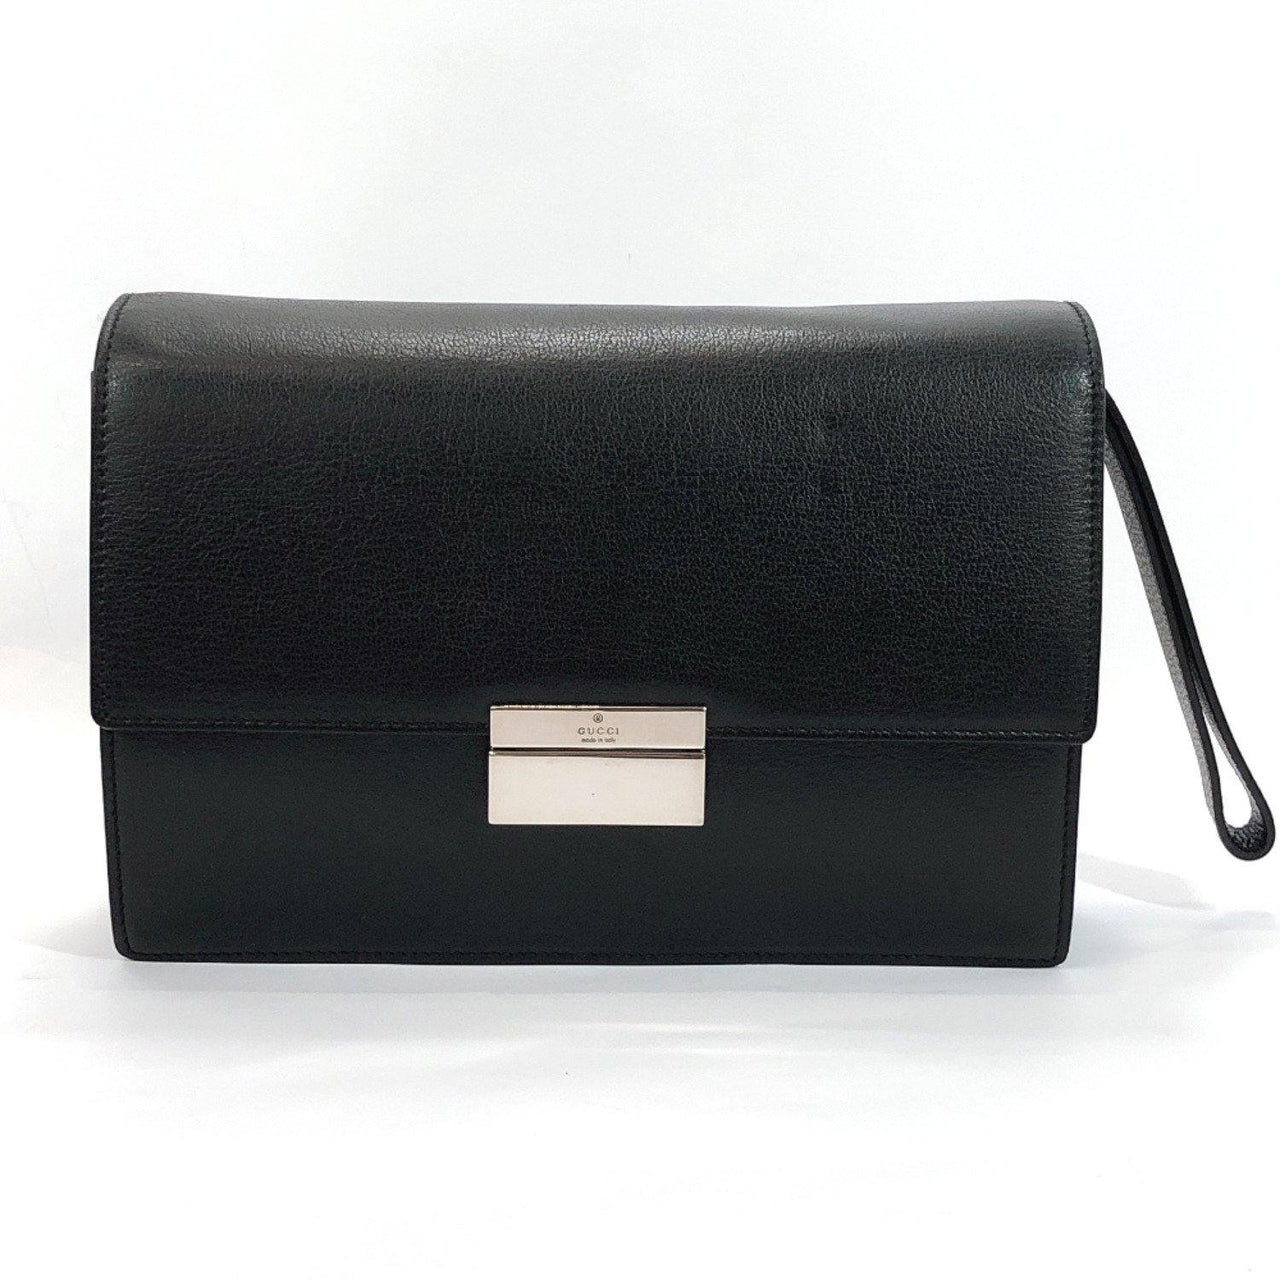 GUCCI Clutch bag 3137 leather black unisex Used - JP-BRANDS.com